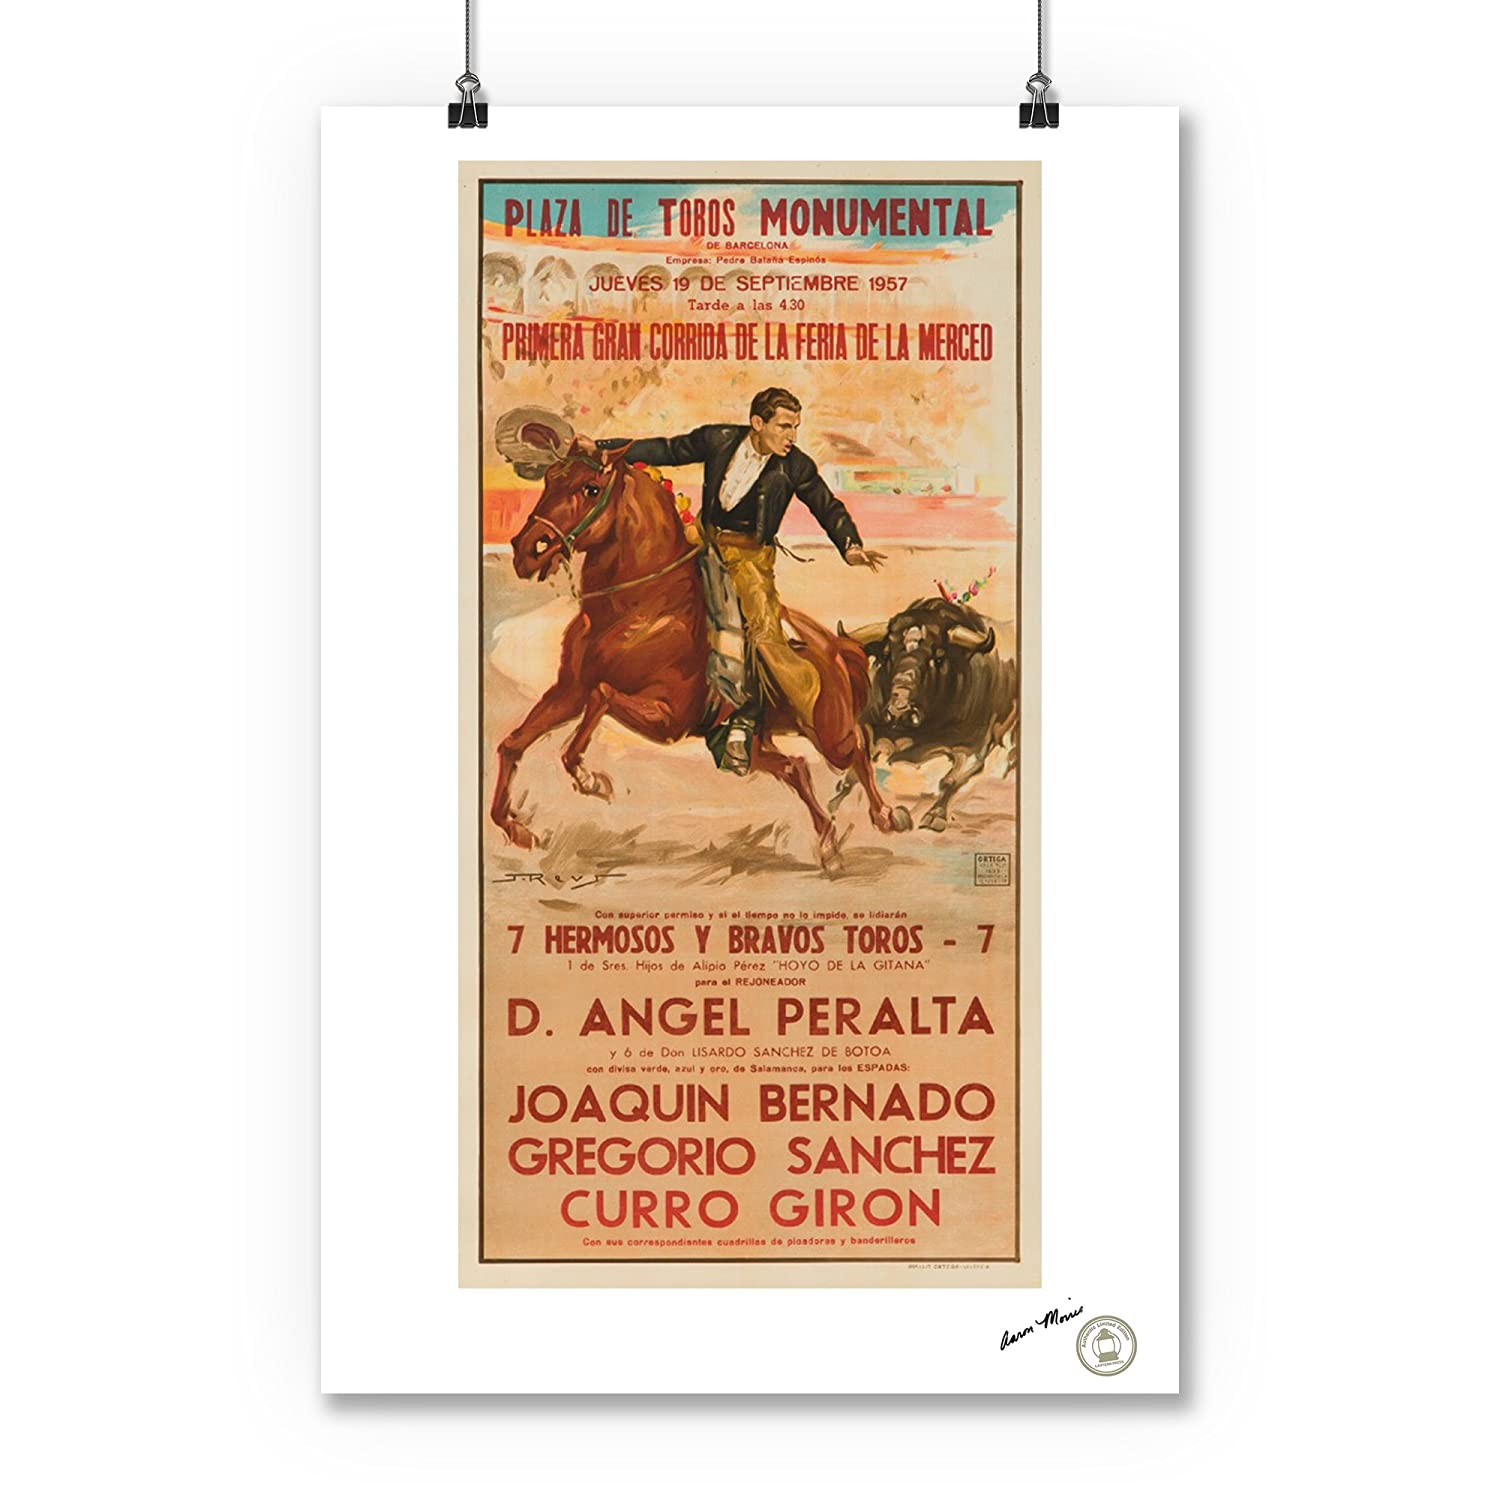 Amazon.com: Plaza de Toros Monumental Vintage Poster (artist: Reus) Spain c. 1957 (16x24 SIGNED Print Master Giclee Print w/ Certificate of Authenticity ...